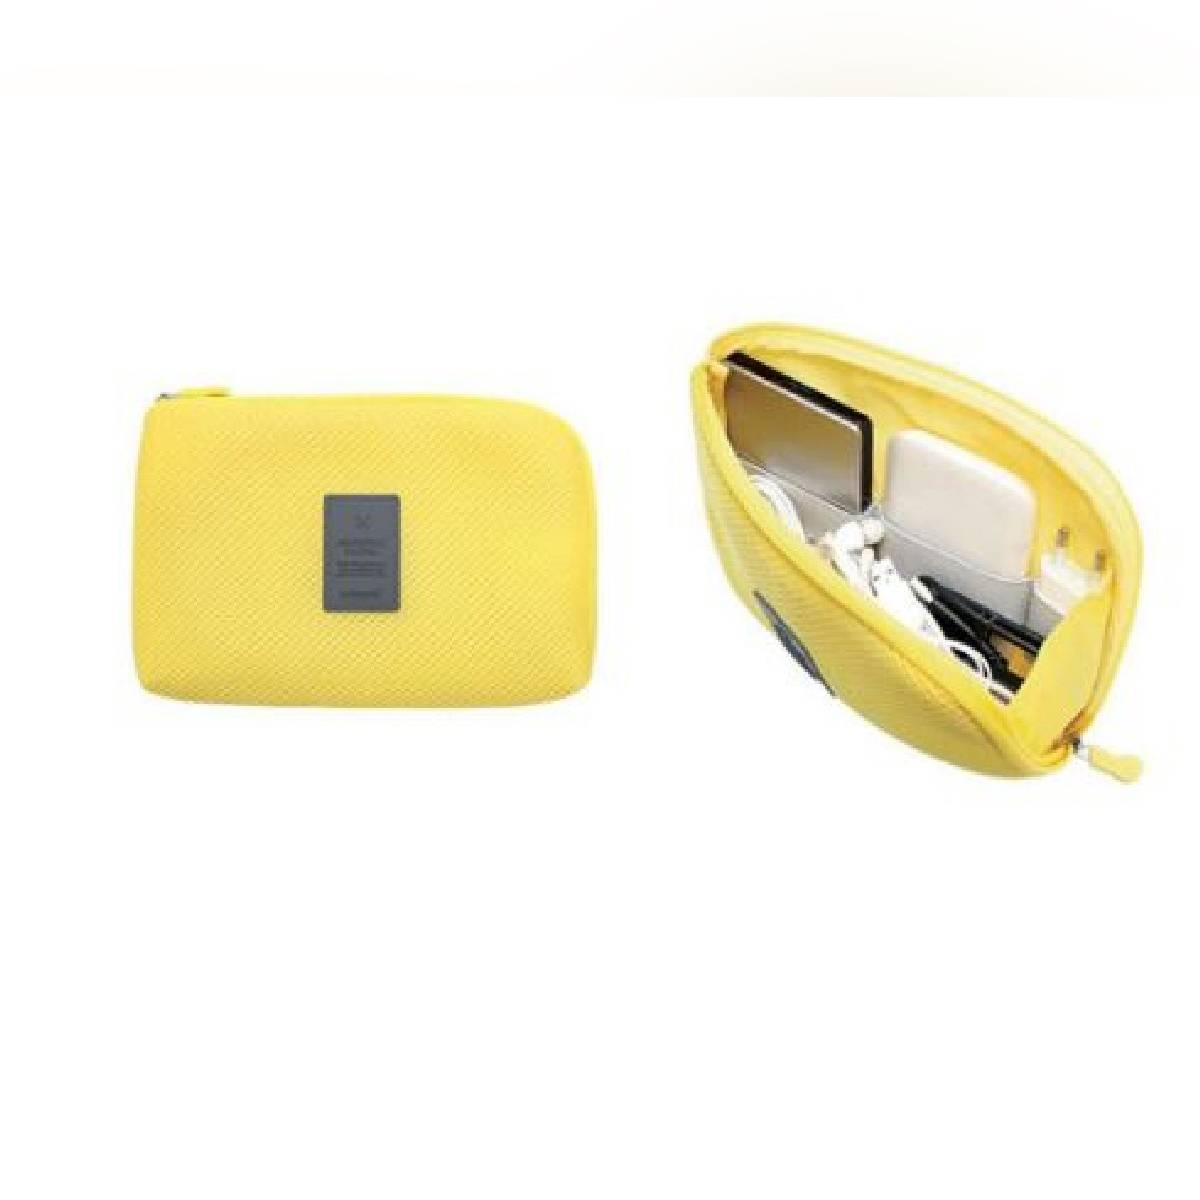 Multi-Functional Portable Slim Travel Cable/Makeup Pouch Case for Small Electronic/Cosmetic Accessories - Yellow